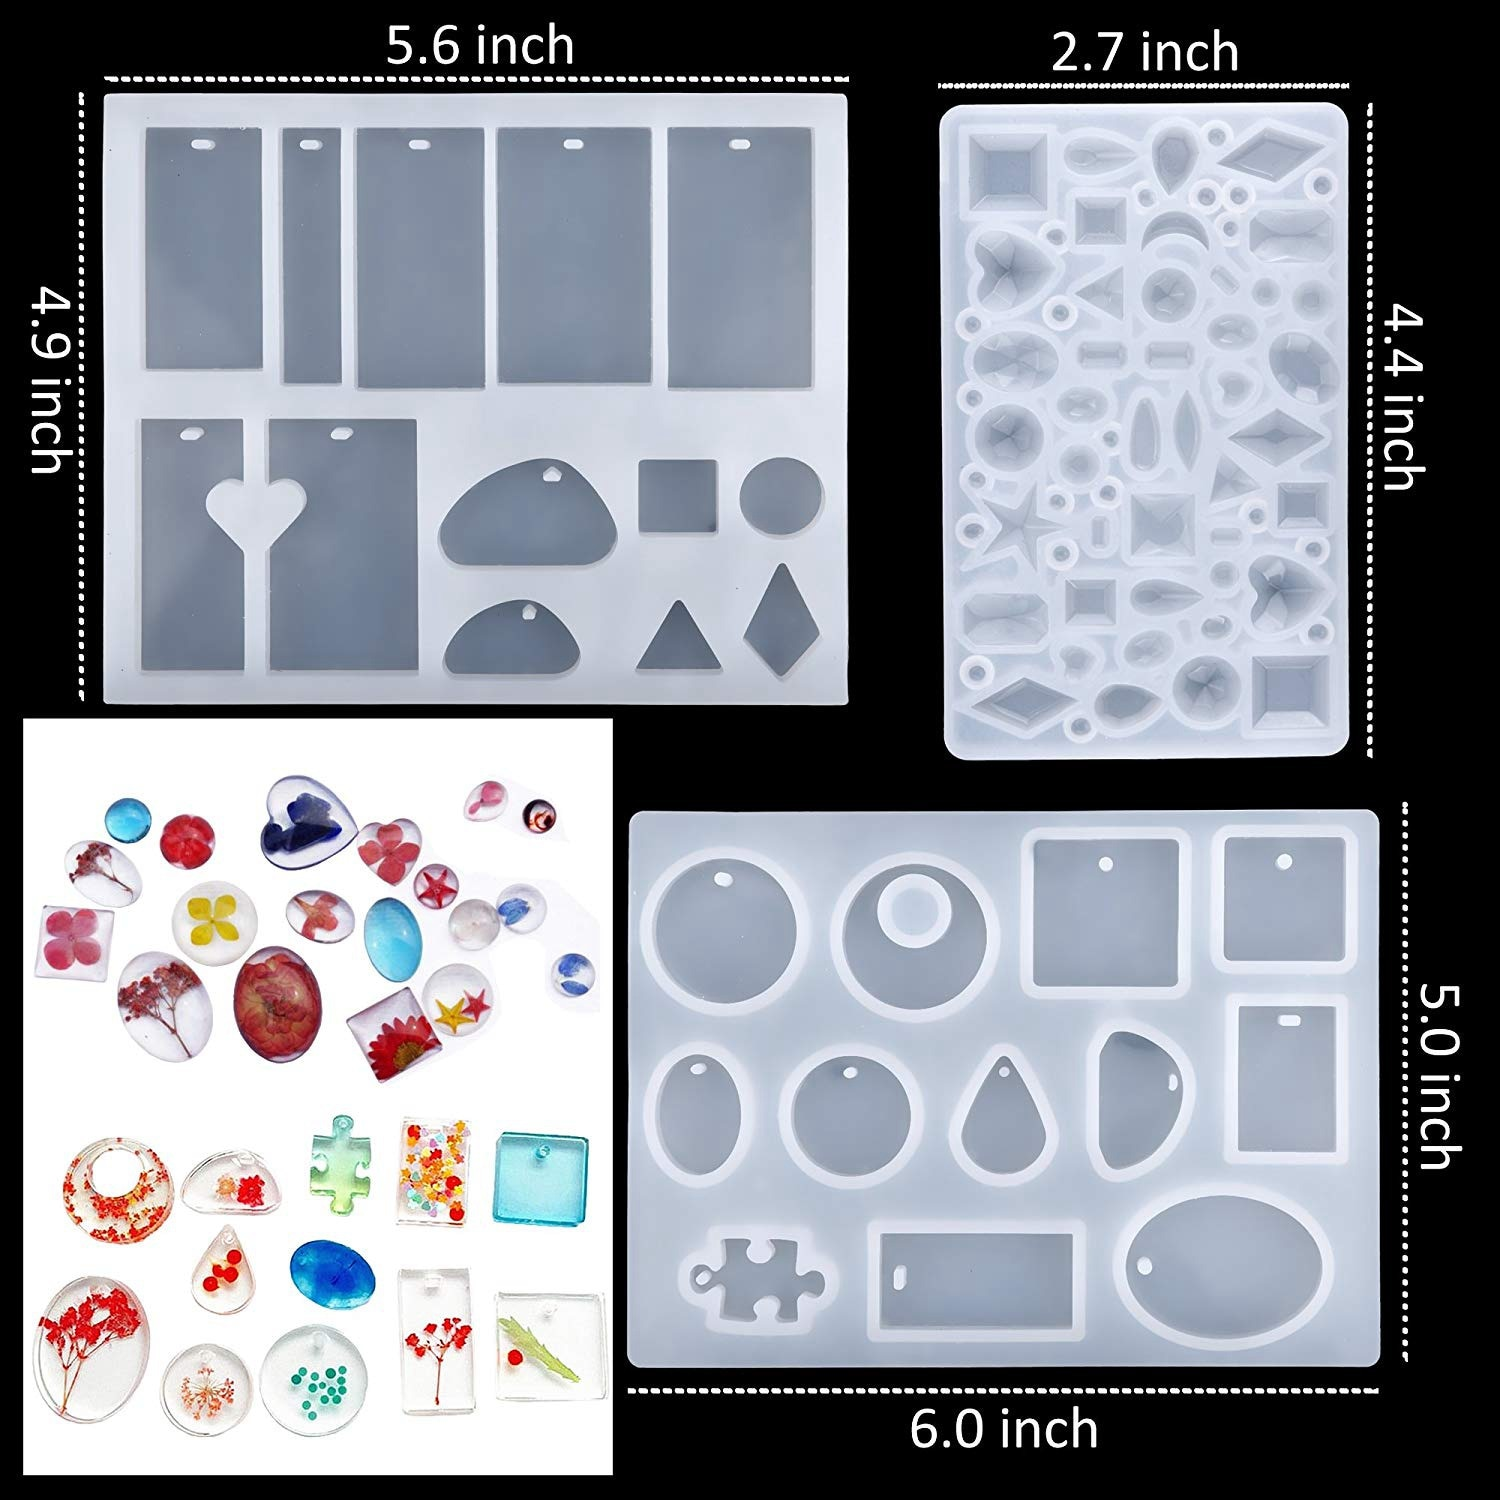 Handmade Crystal Glue Mould Jewelry Best Diy Kit Silicone Mold Art Set 83//94Pcs